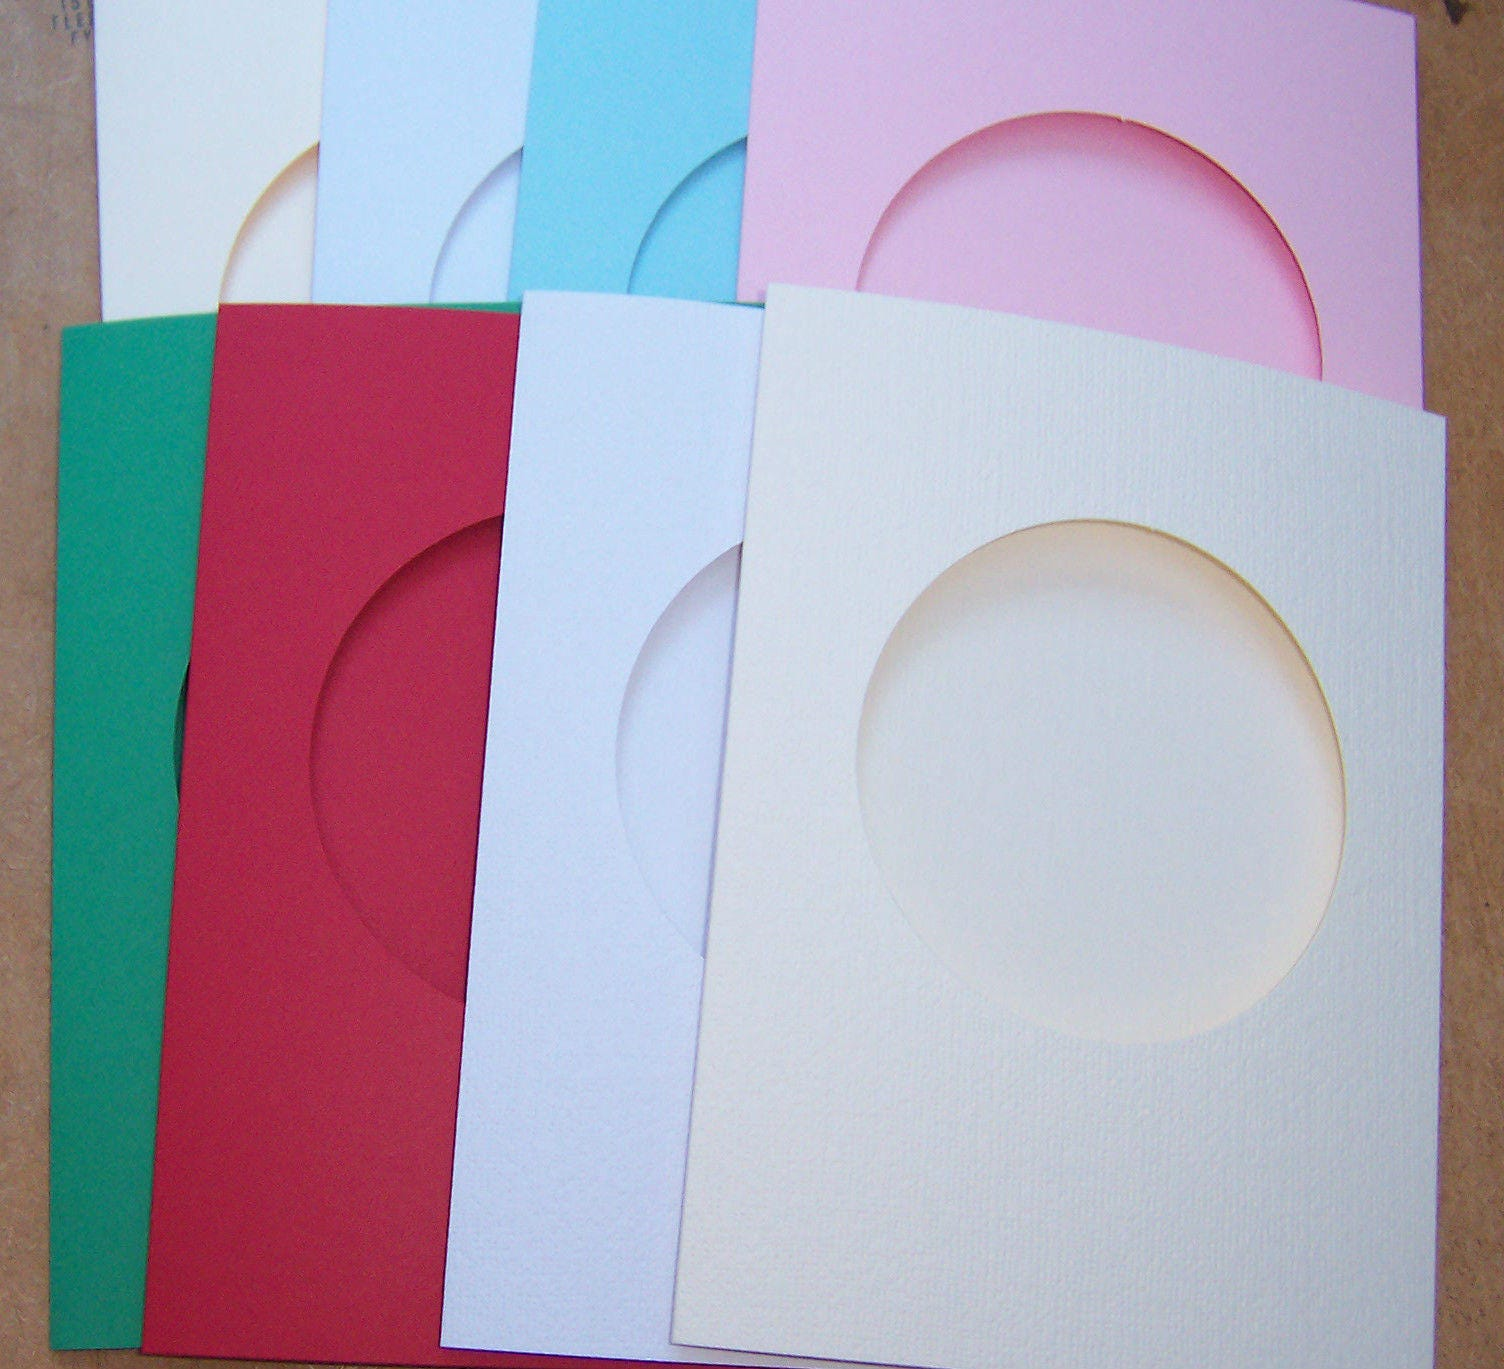 Card blanks 5 round aperture cards greeting cards blanks zoom m4hsunfo